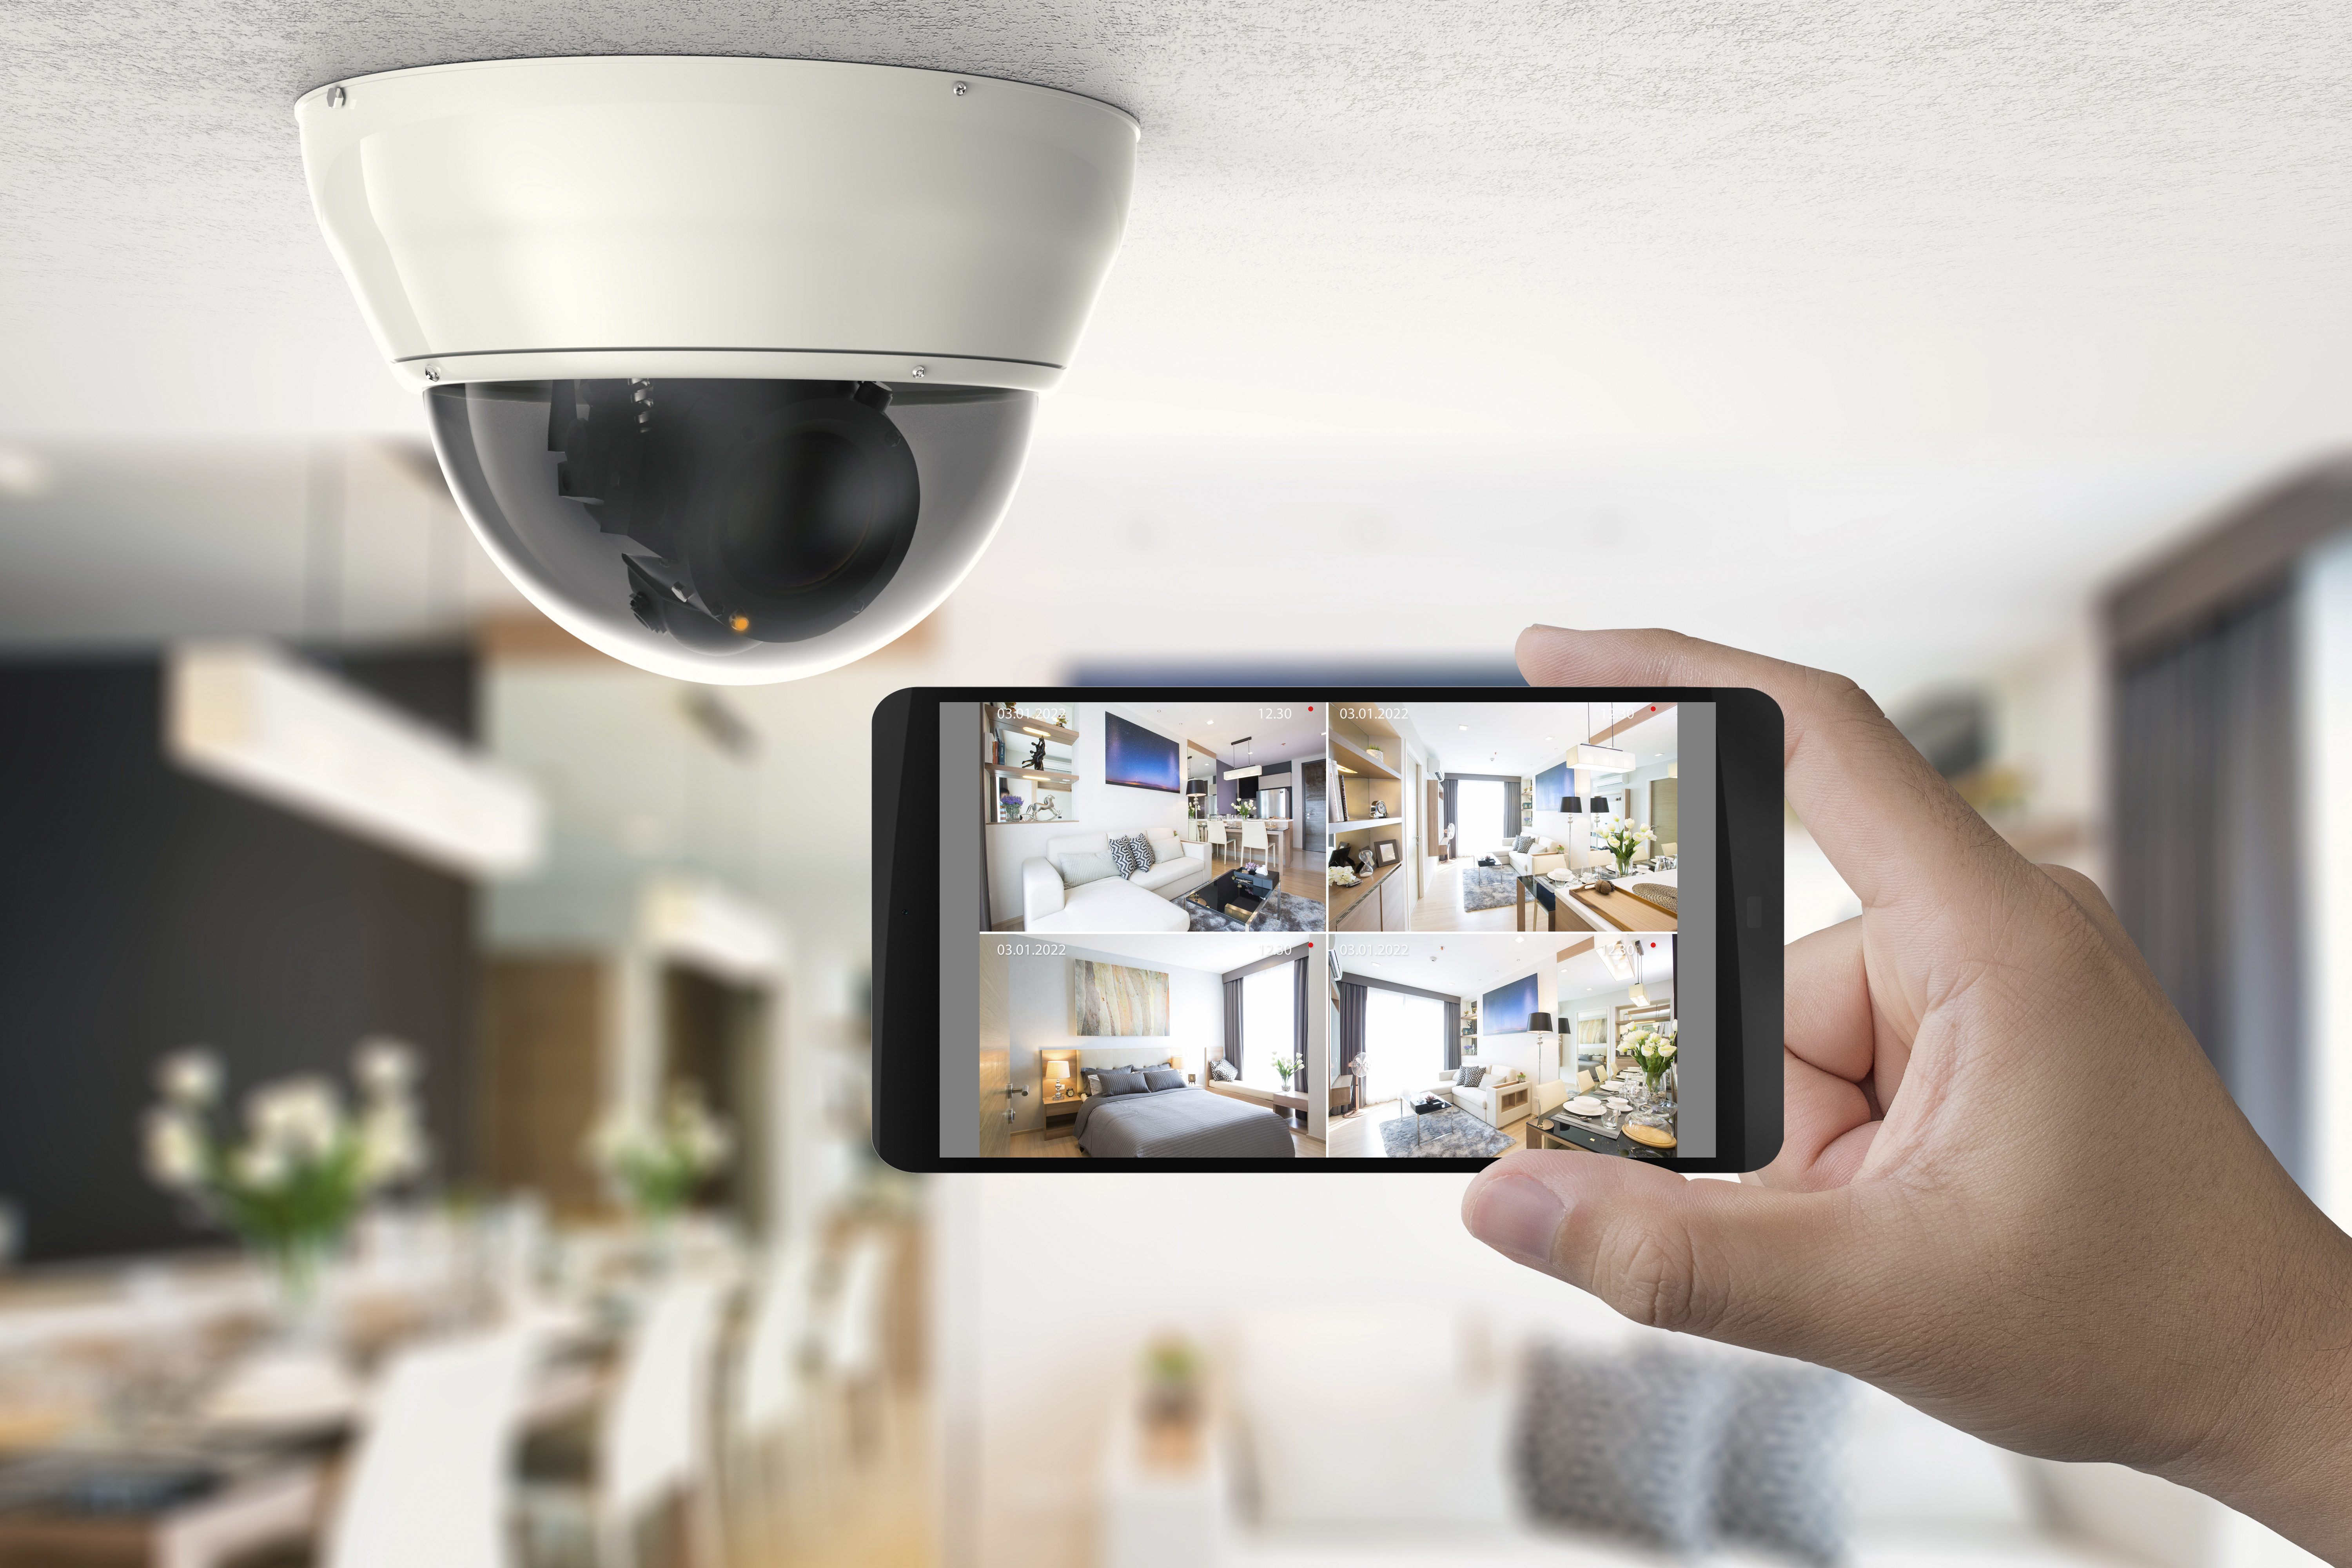 The Benefits of Home Security Cameras Systems | Central ... on mobile home storage, mobile home alarm systems, mobile surveillance cameras, wireless security cameras, mobile home parking, mobile home tools, mobile home intercom systems, barn security cameras, mobile home signs, mobile home mirrors, mobile home electrical, mobile home insurance, mobile home thermostats, industrial security cameras, mobile home photography, lease security cameras, mobile home financing program, mobile home vehicles, car security cameras,